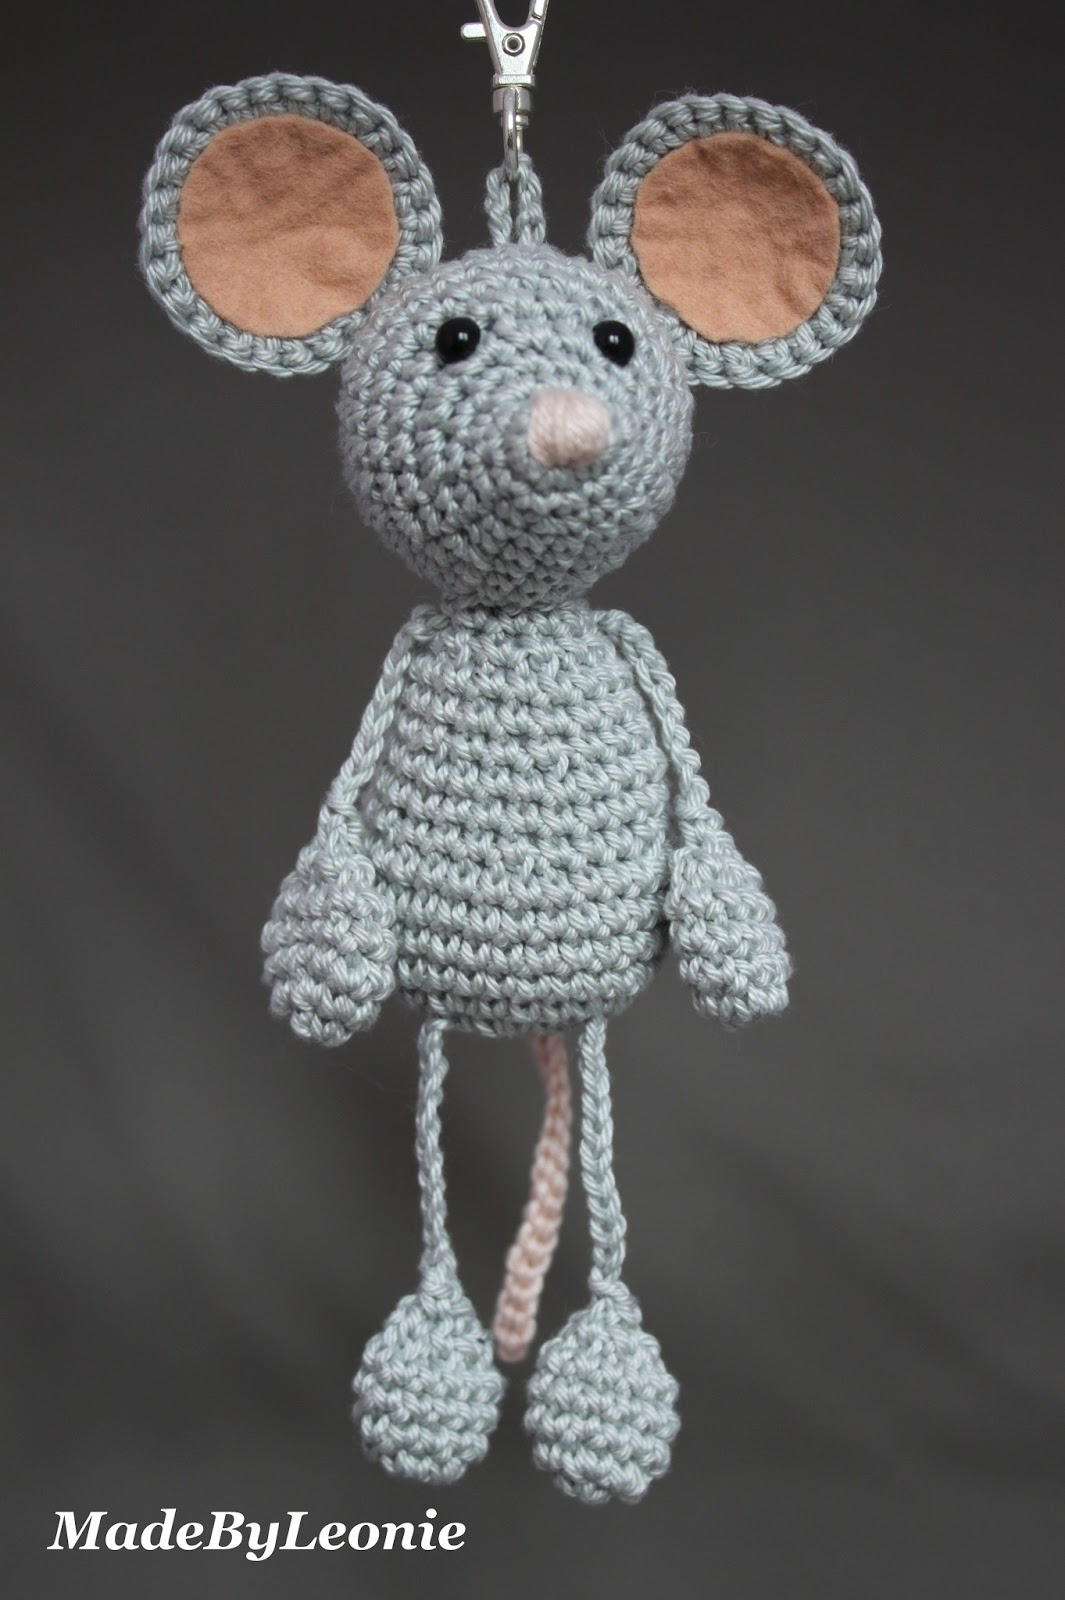 Crochet Pattern Free Mouse : MadeByLeonie